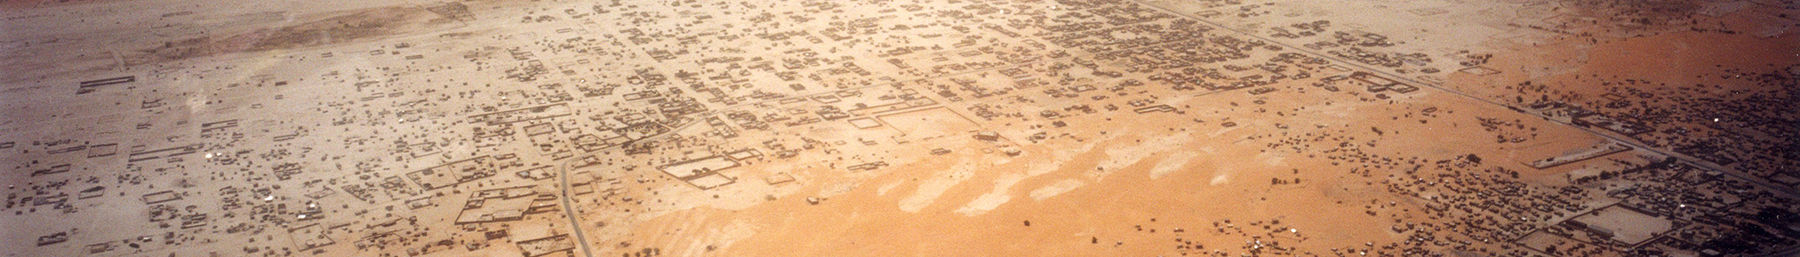 Nouakchott banner view from air.jpg